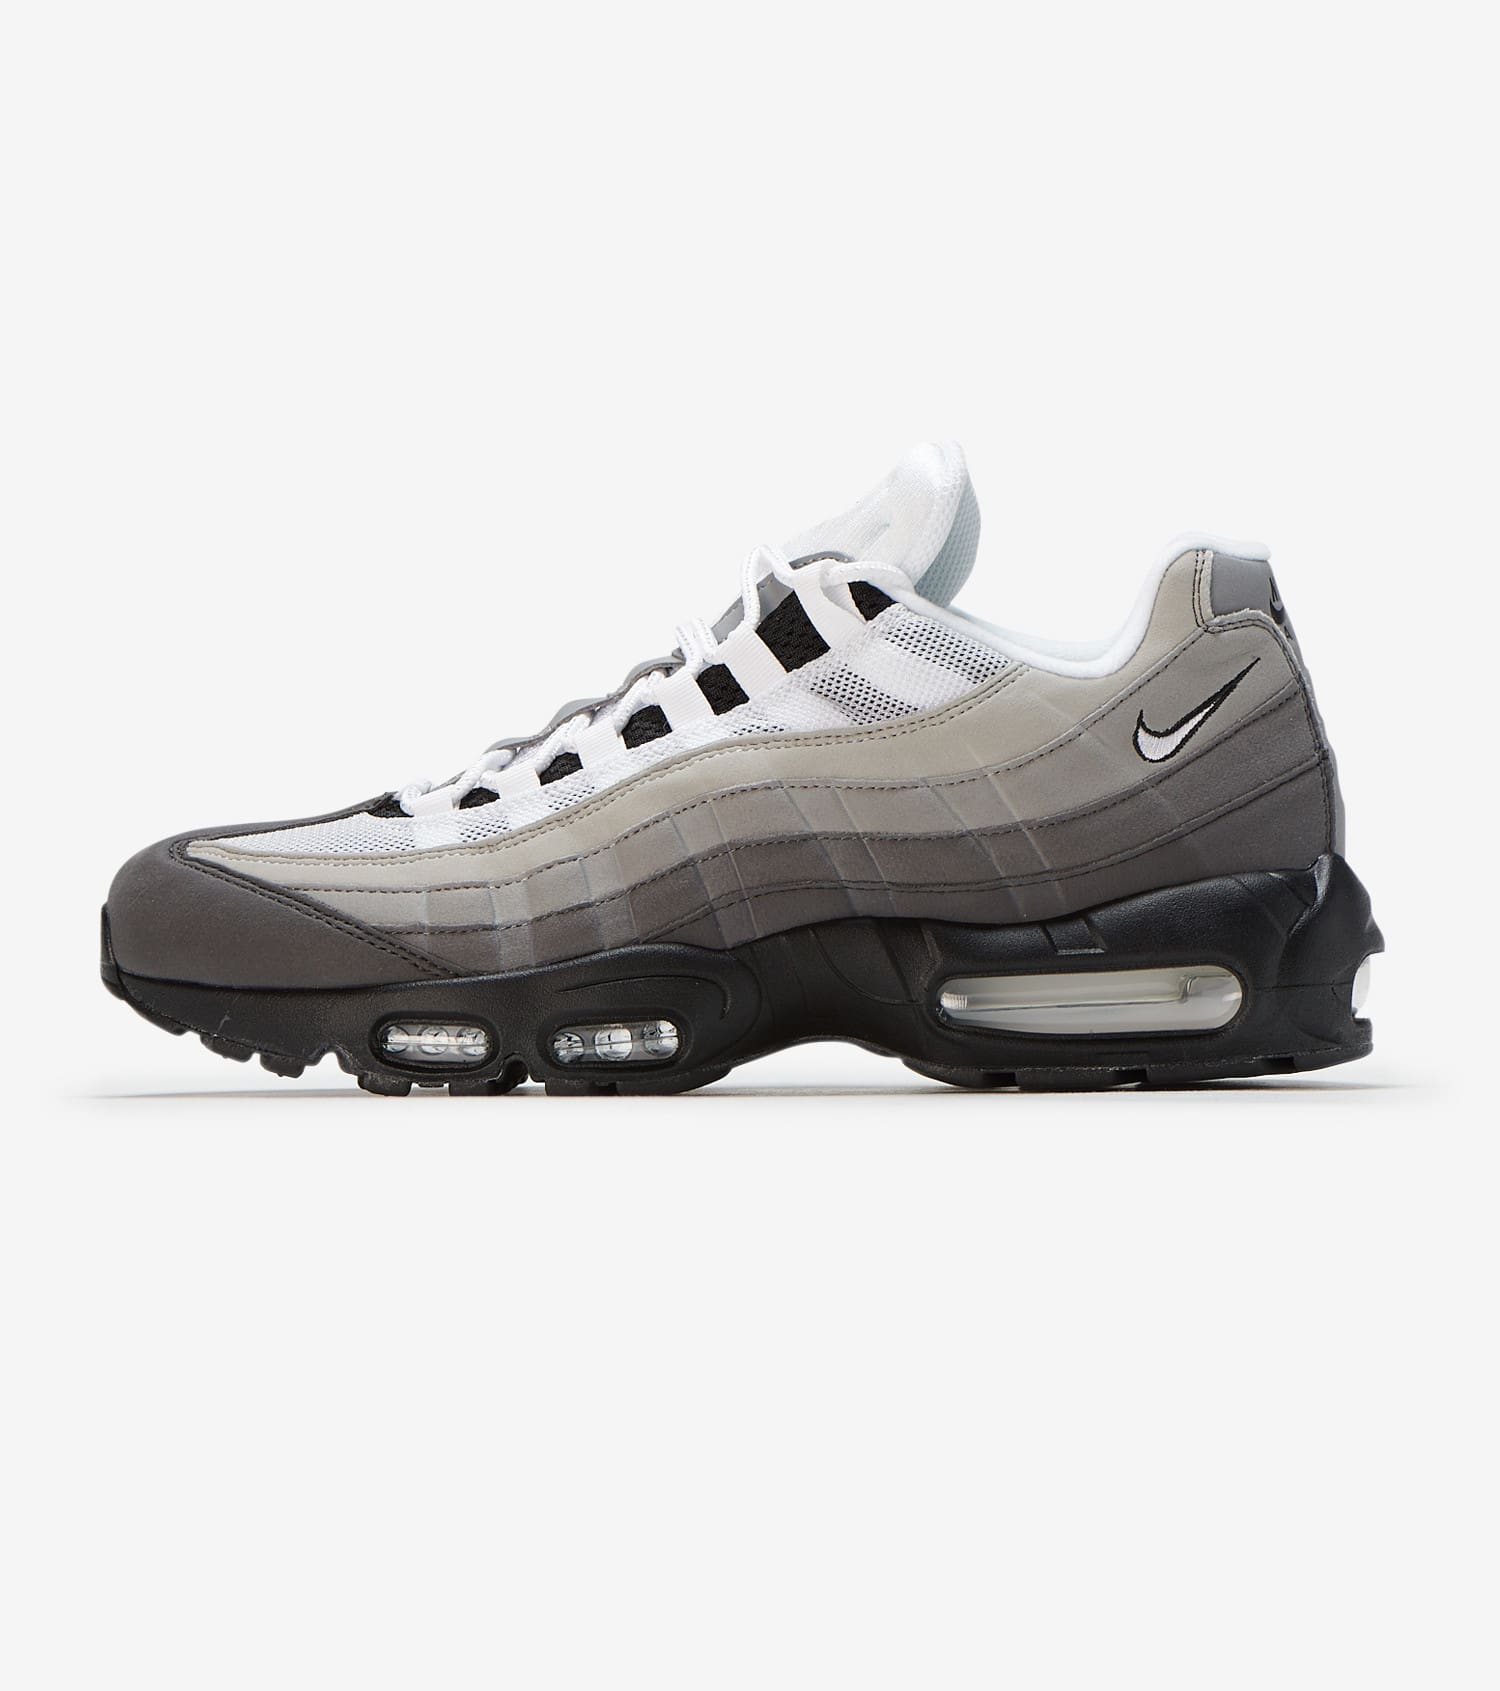 air max 95 sale size 8